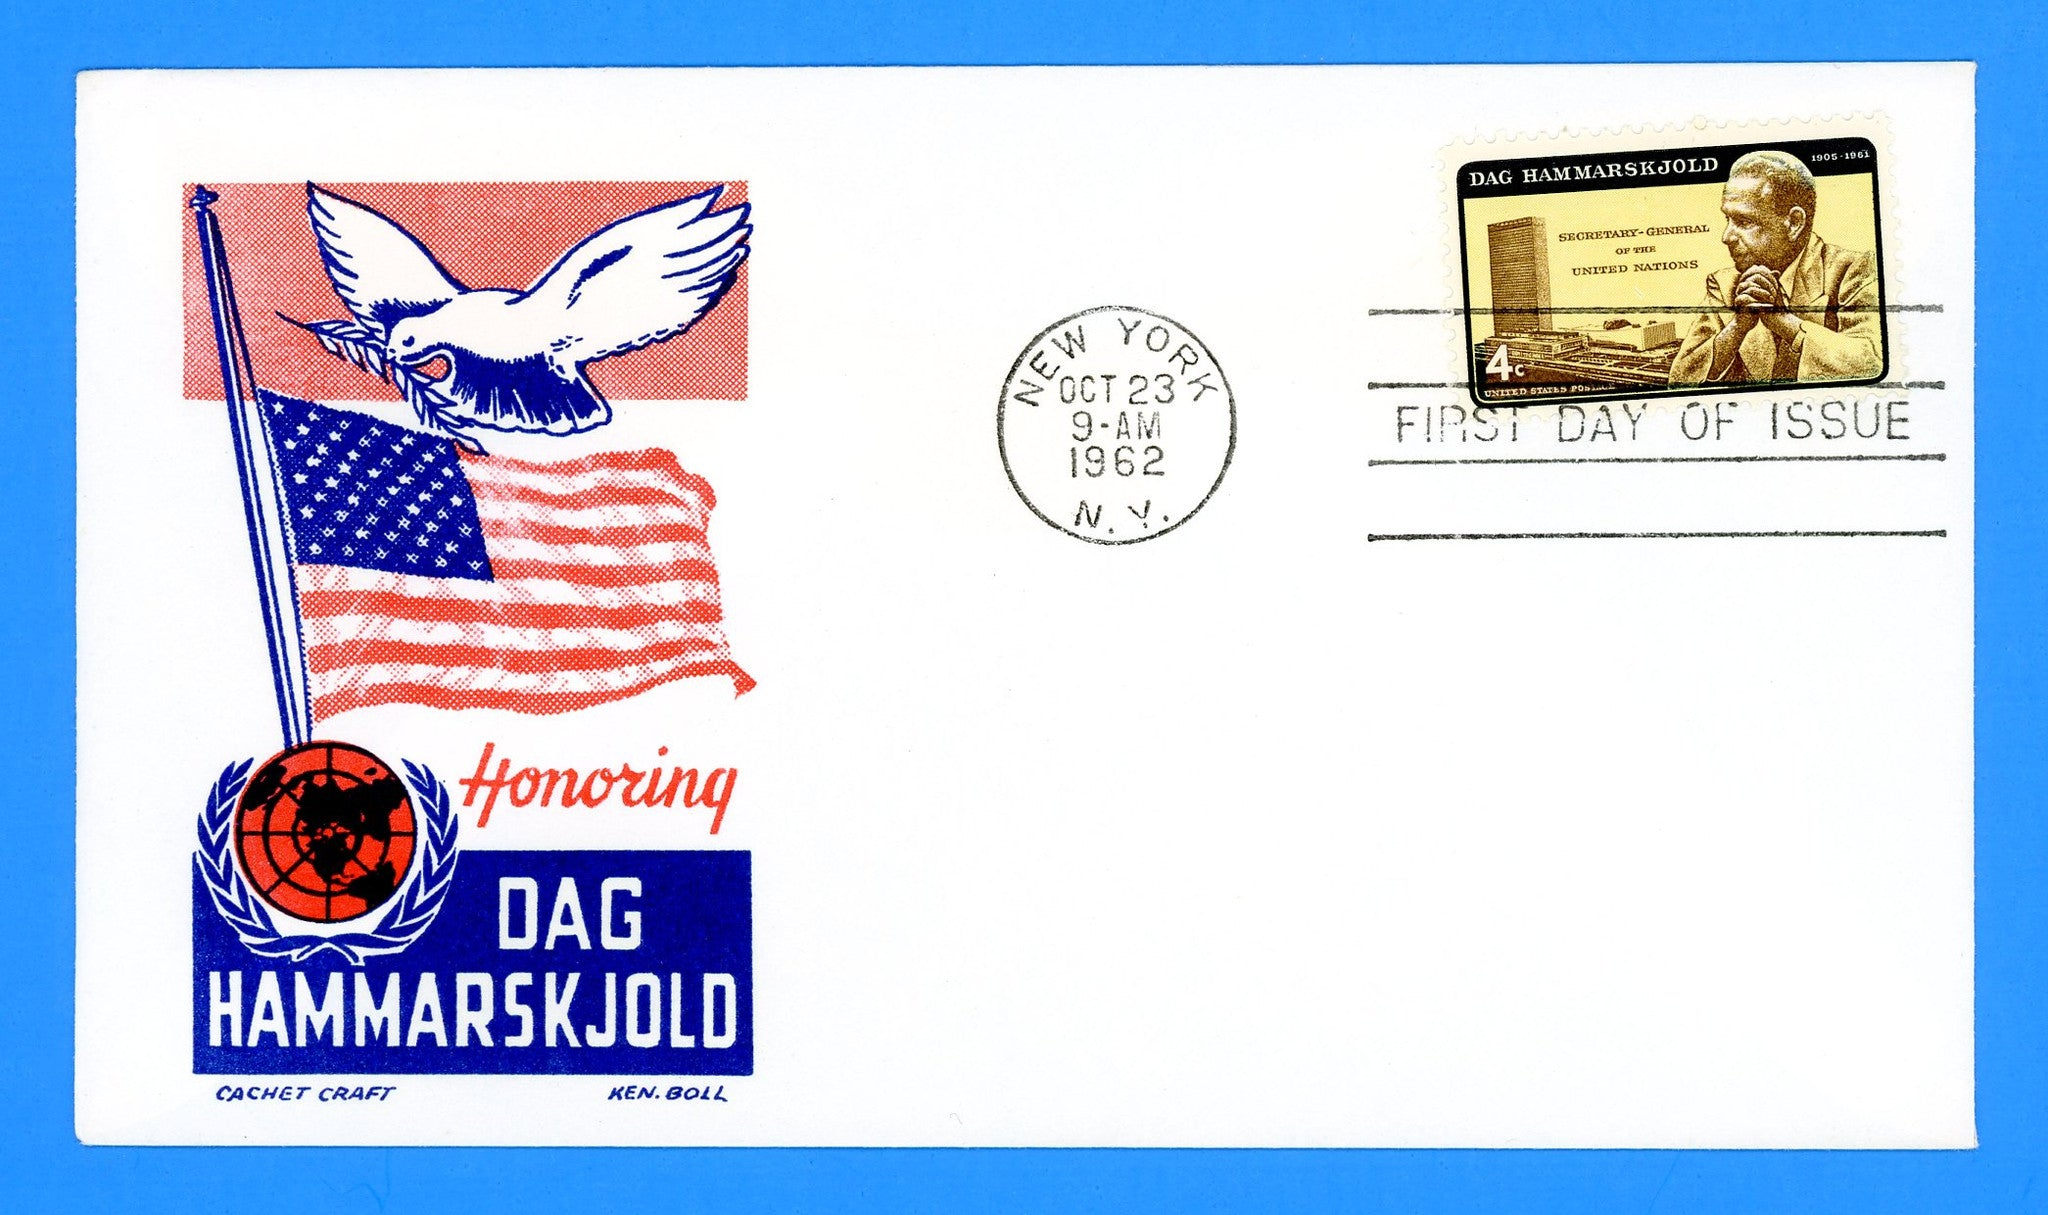 Scott 1203 Dag Hammarskjold First Day Cover by Cachet Craft/Boll